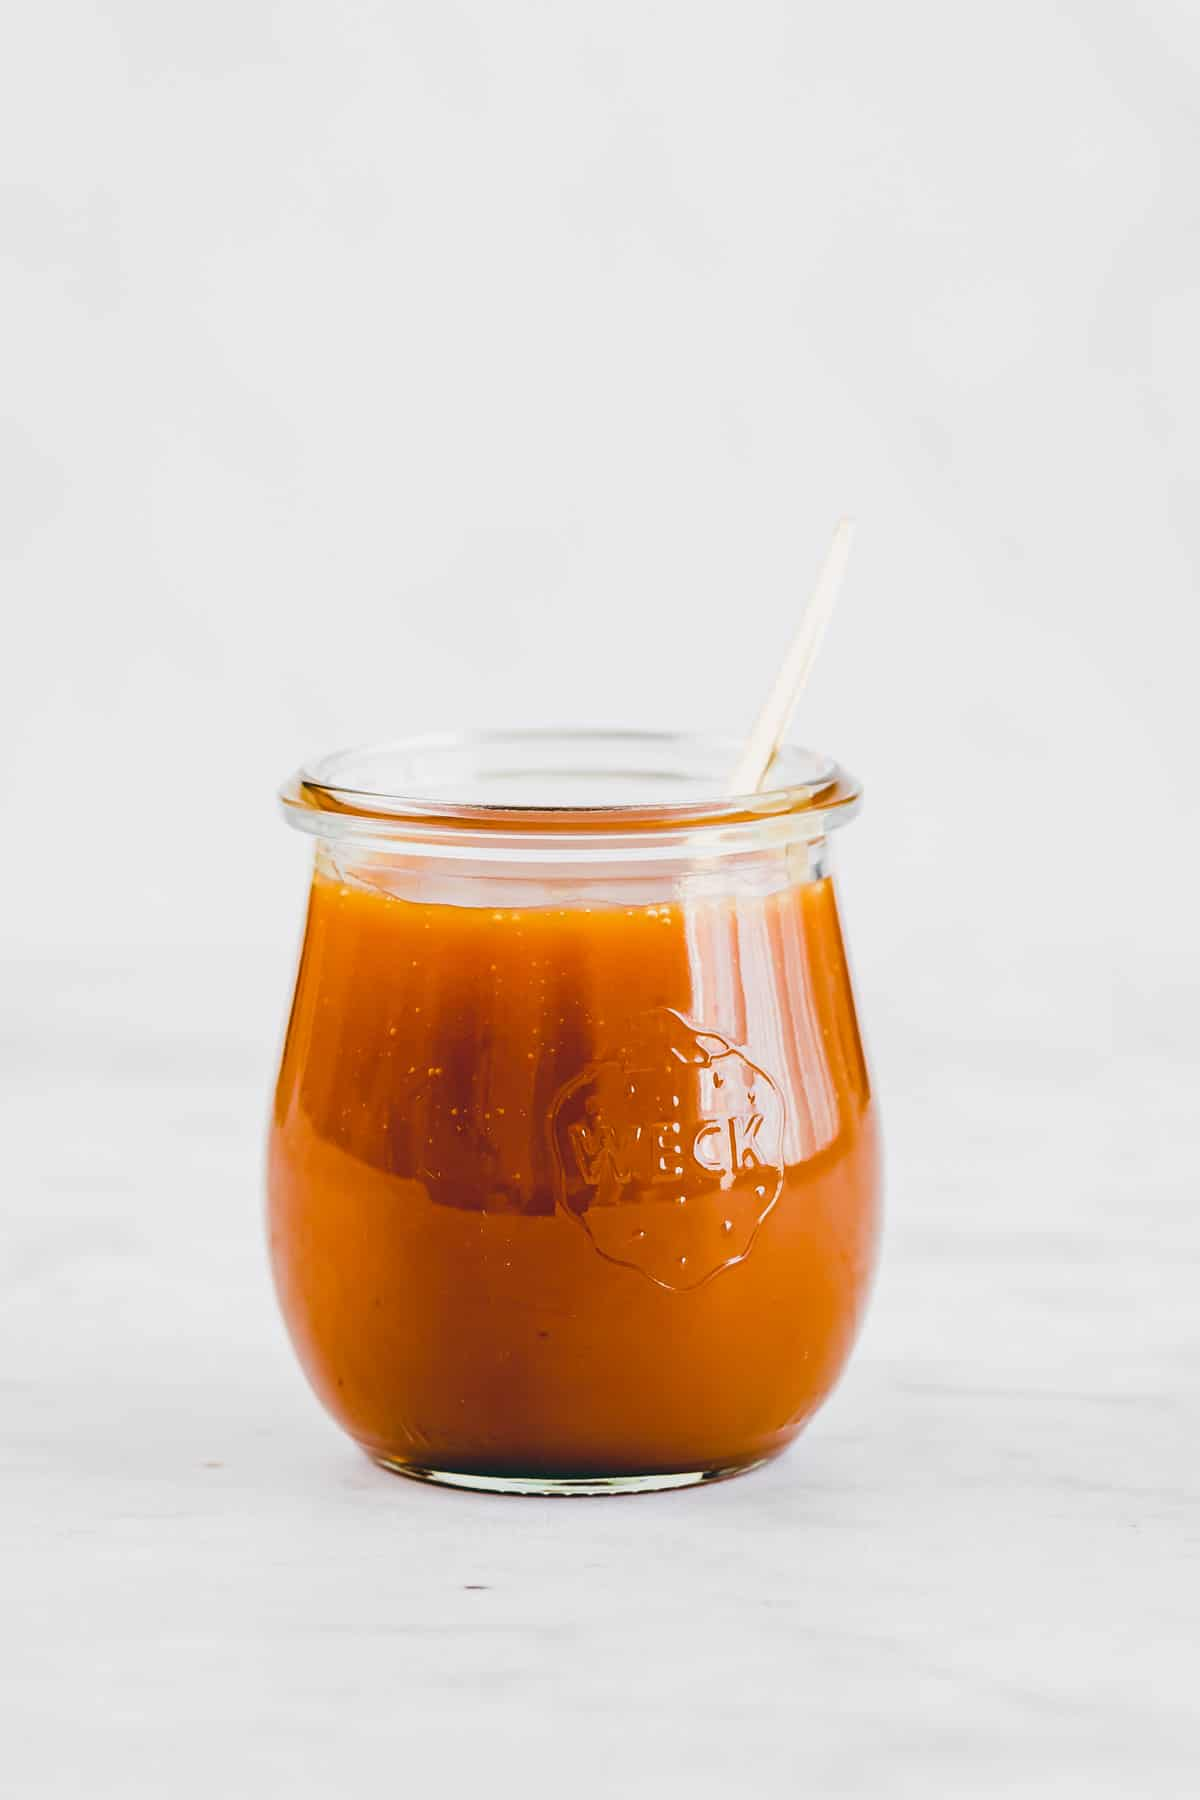 a jar filled with homemade caramel sauce and a golden spoon